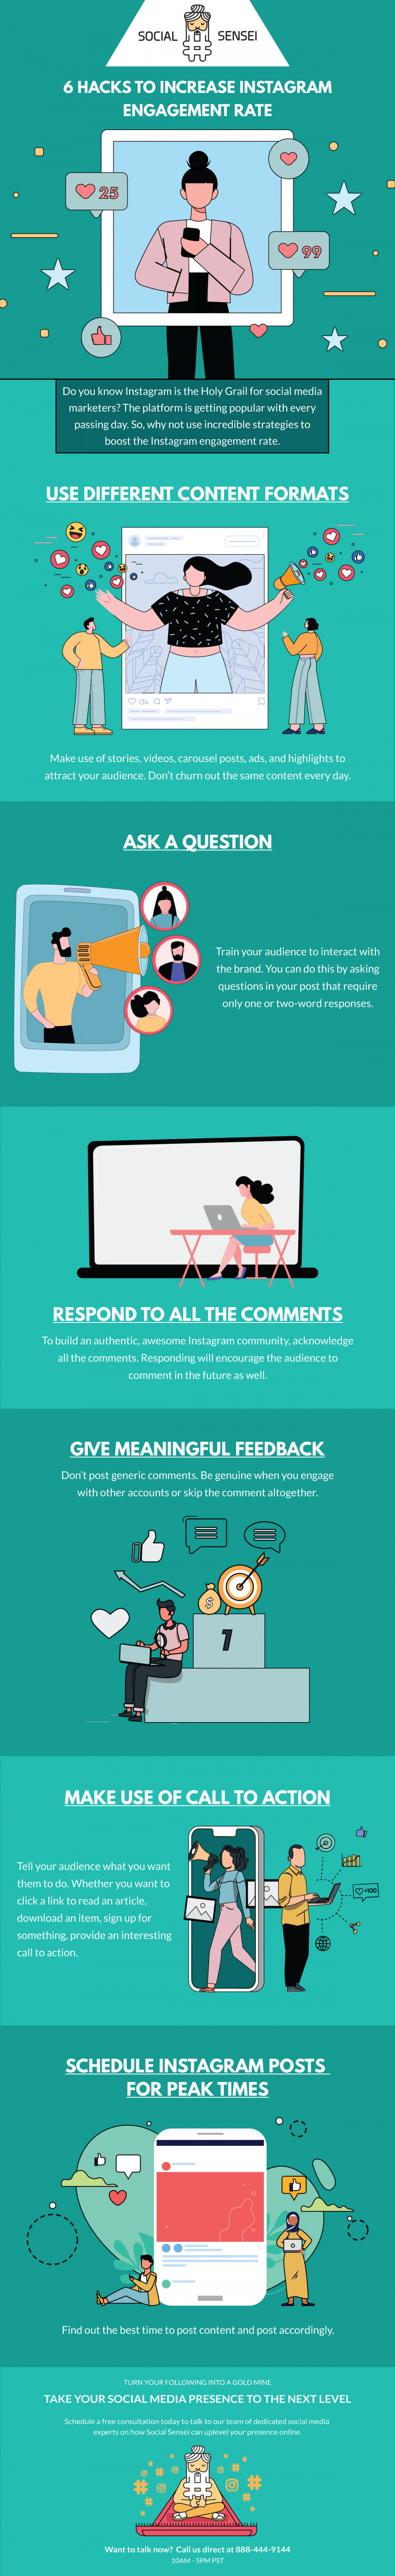 6 Hacks to Increase Instagram Engagement Rate Infographic